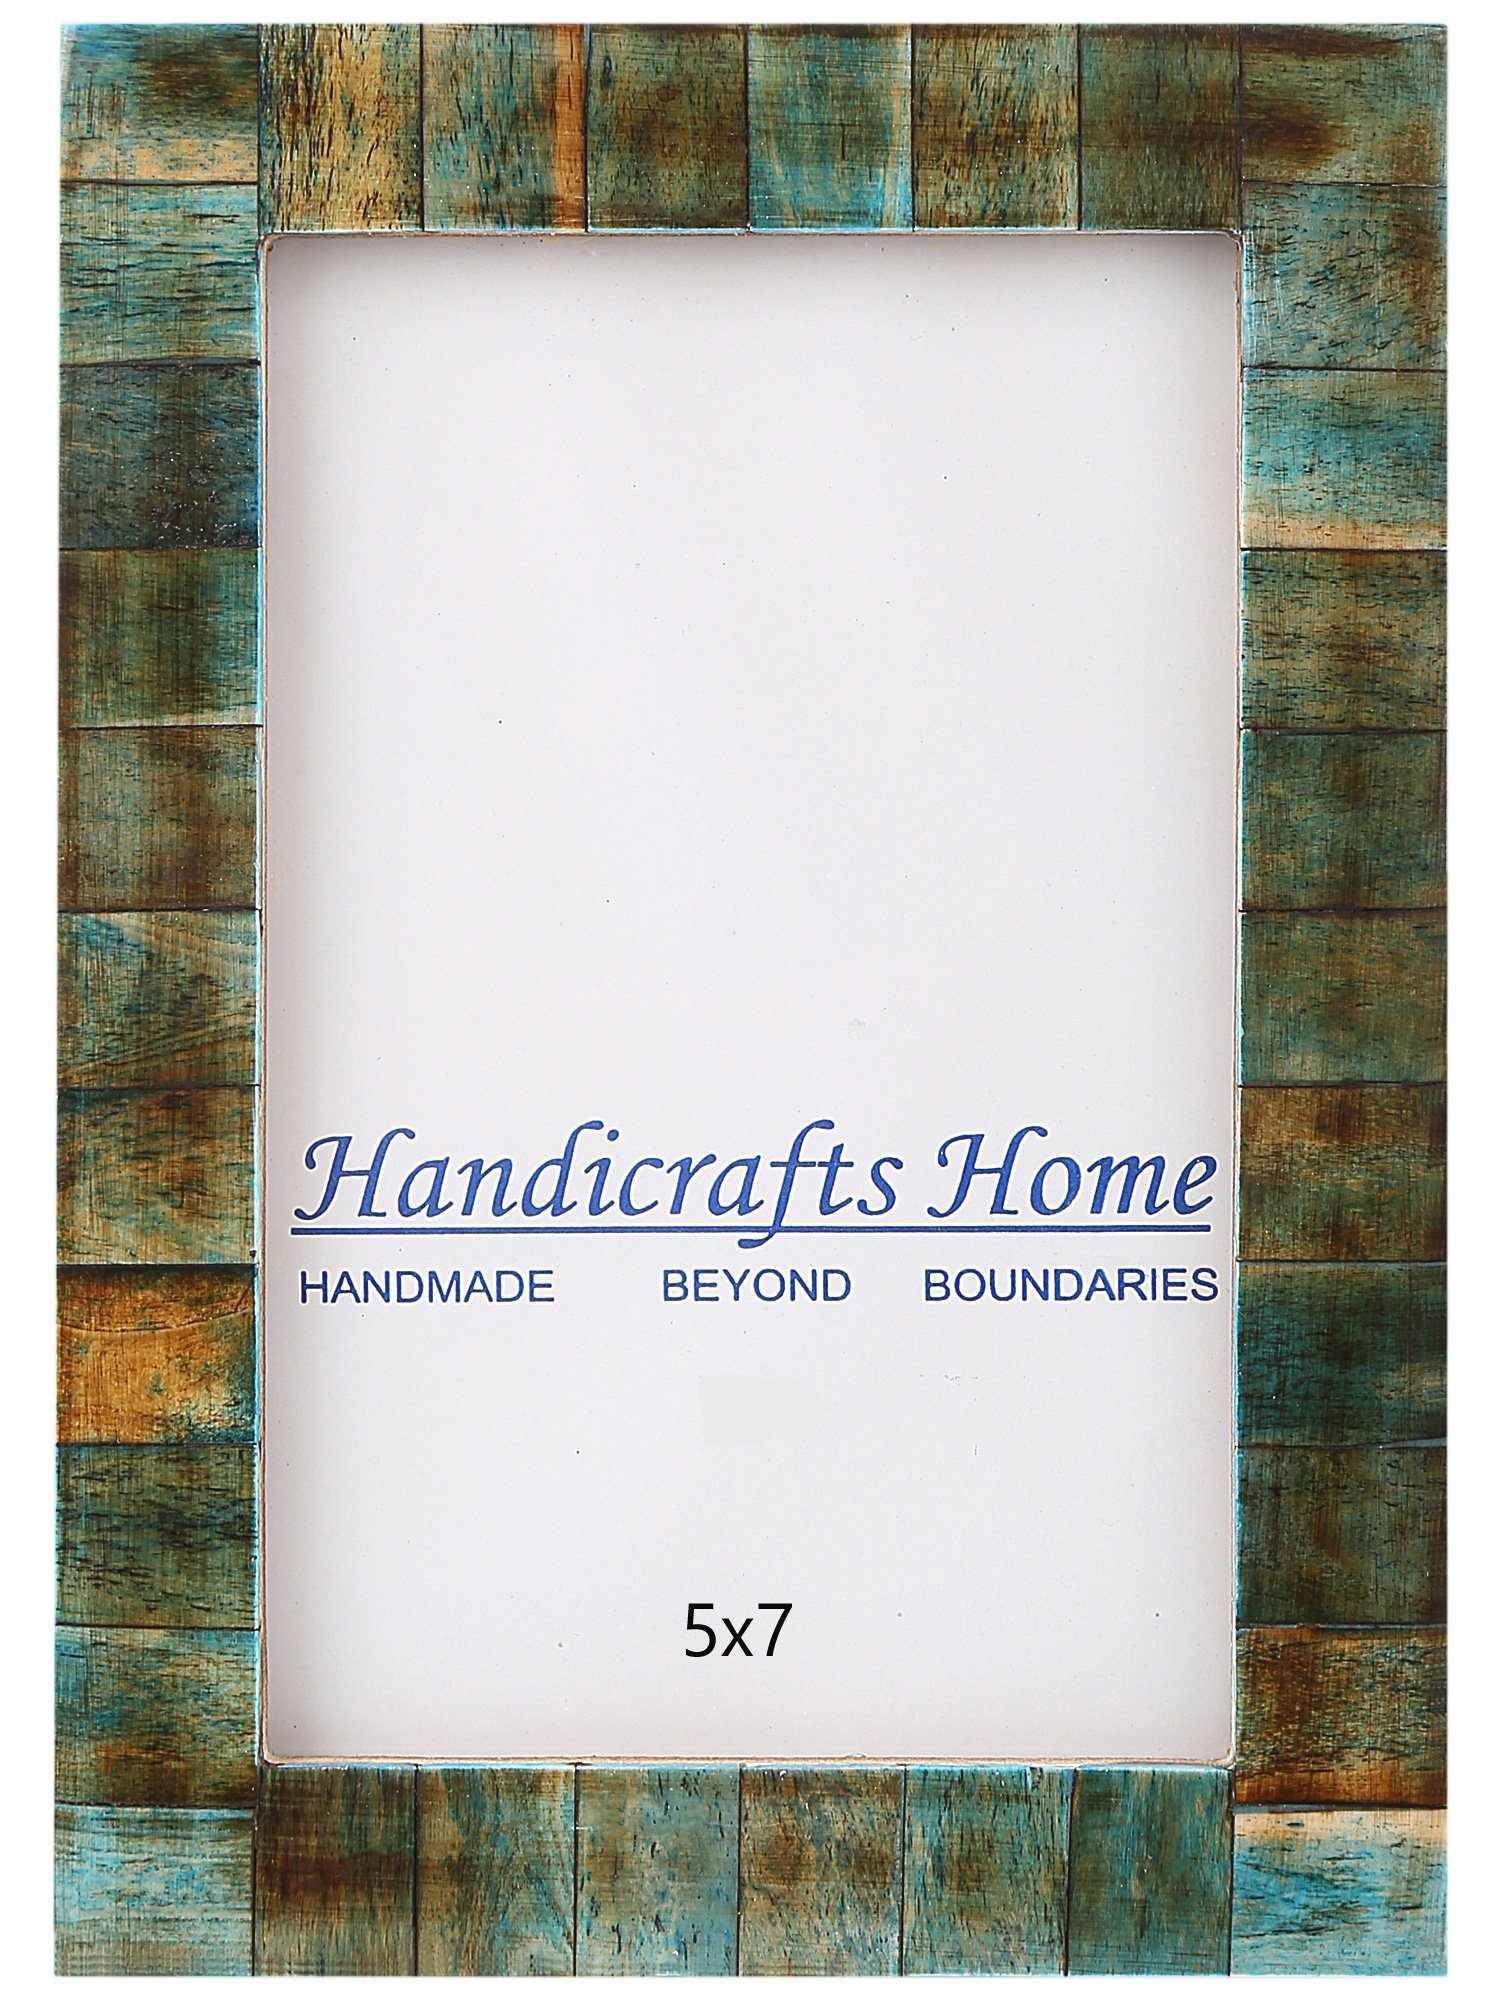 Handicrafts Home 5x7 Verdigris Bone Picture Frames Chic Photo Frame Handmade Vintage from